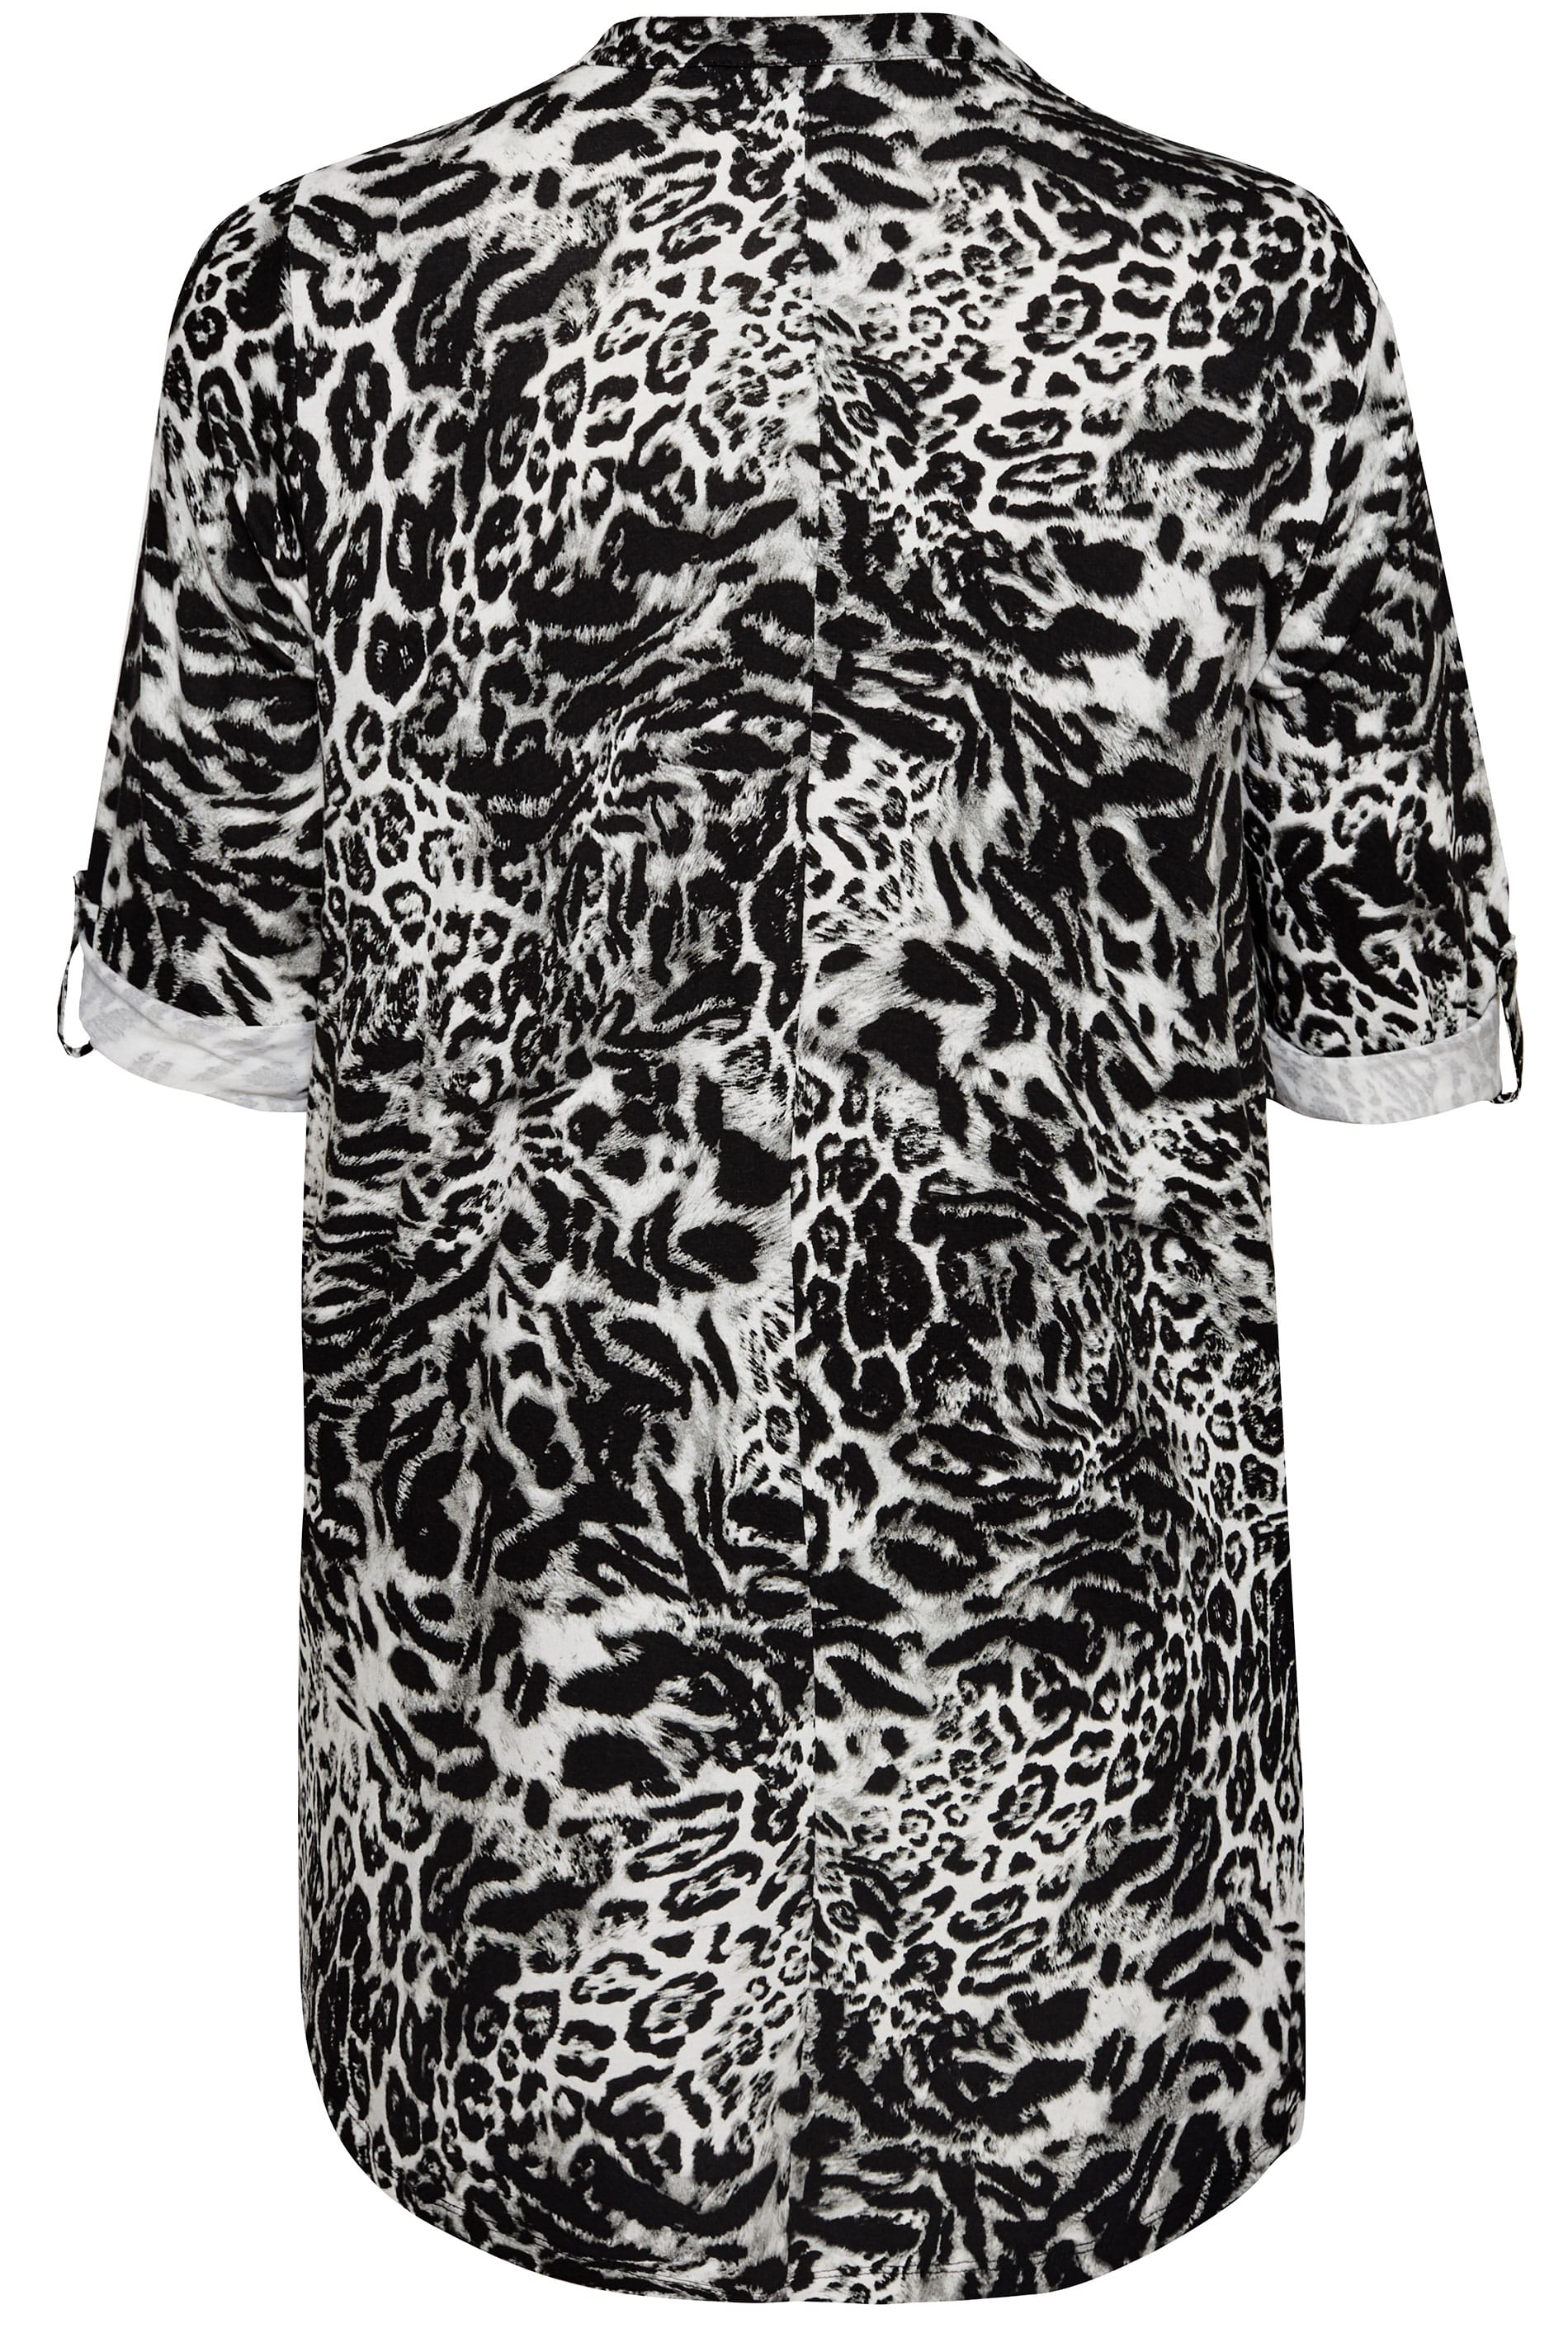 Plus Size Black Amp White Animal Print Zip Top Sizes 16 To